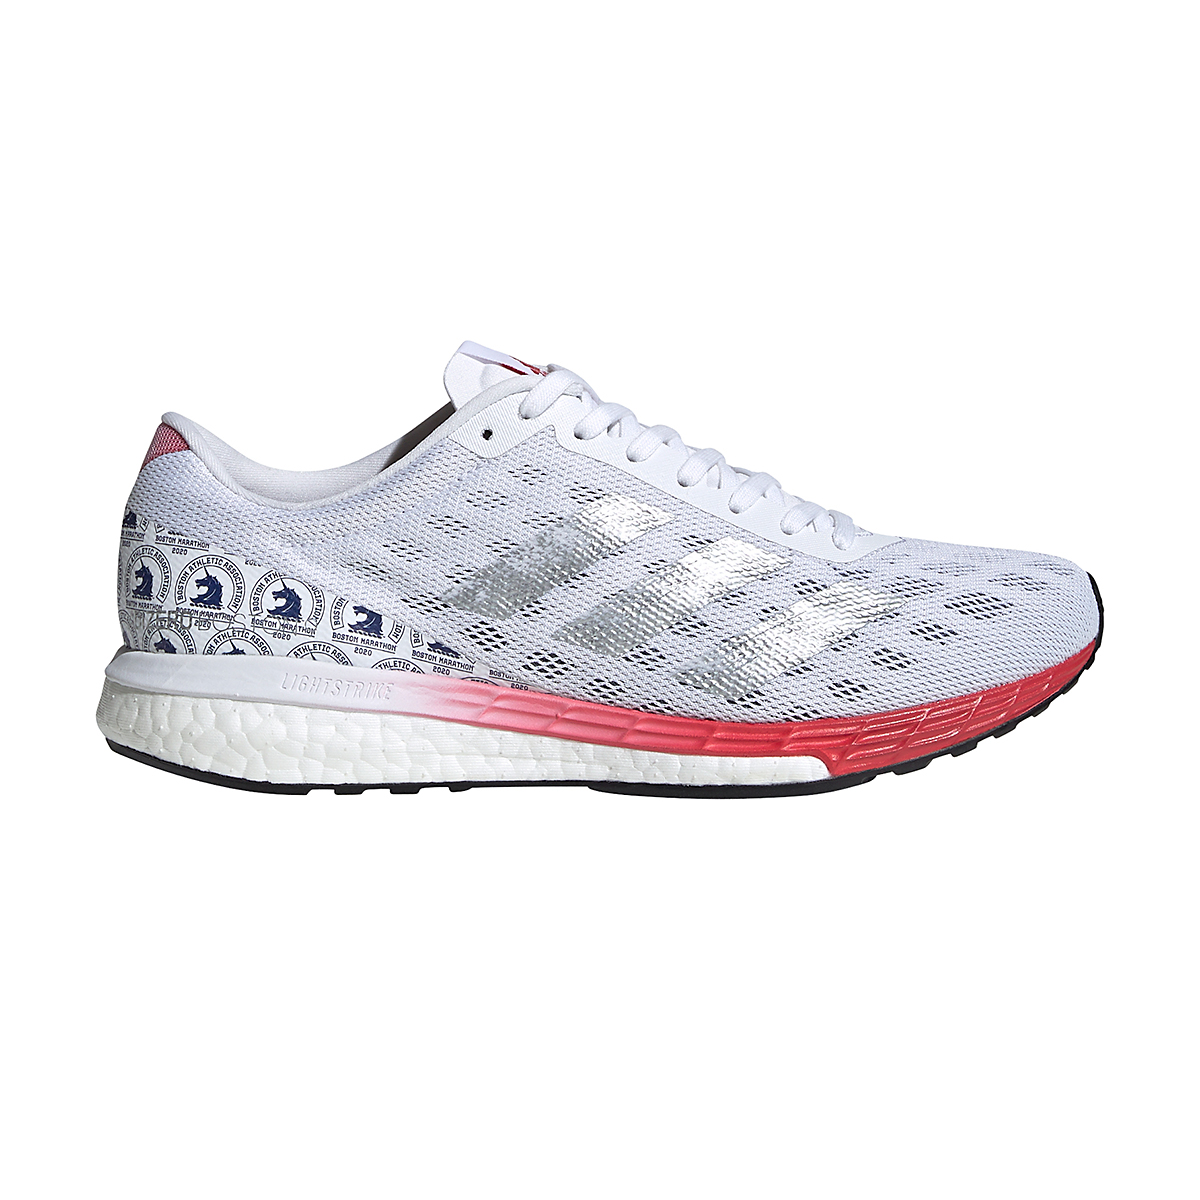 Adidas Adizero Boston 9 Women's Running Shoe